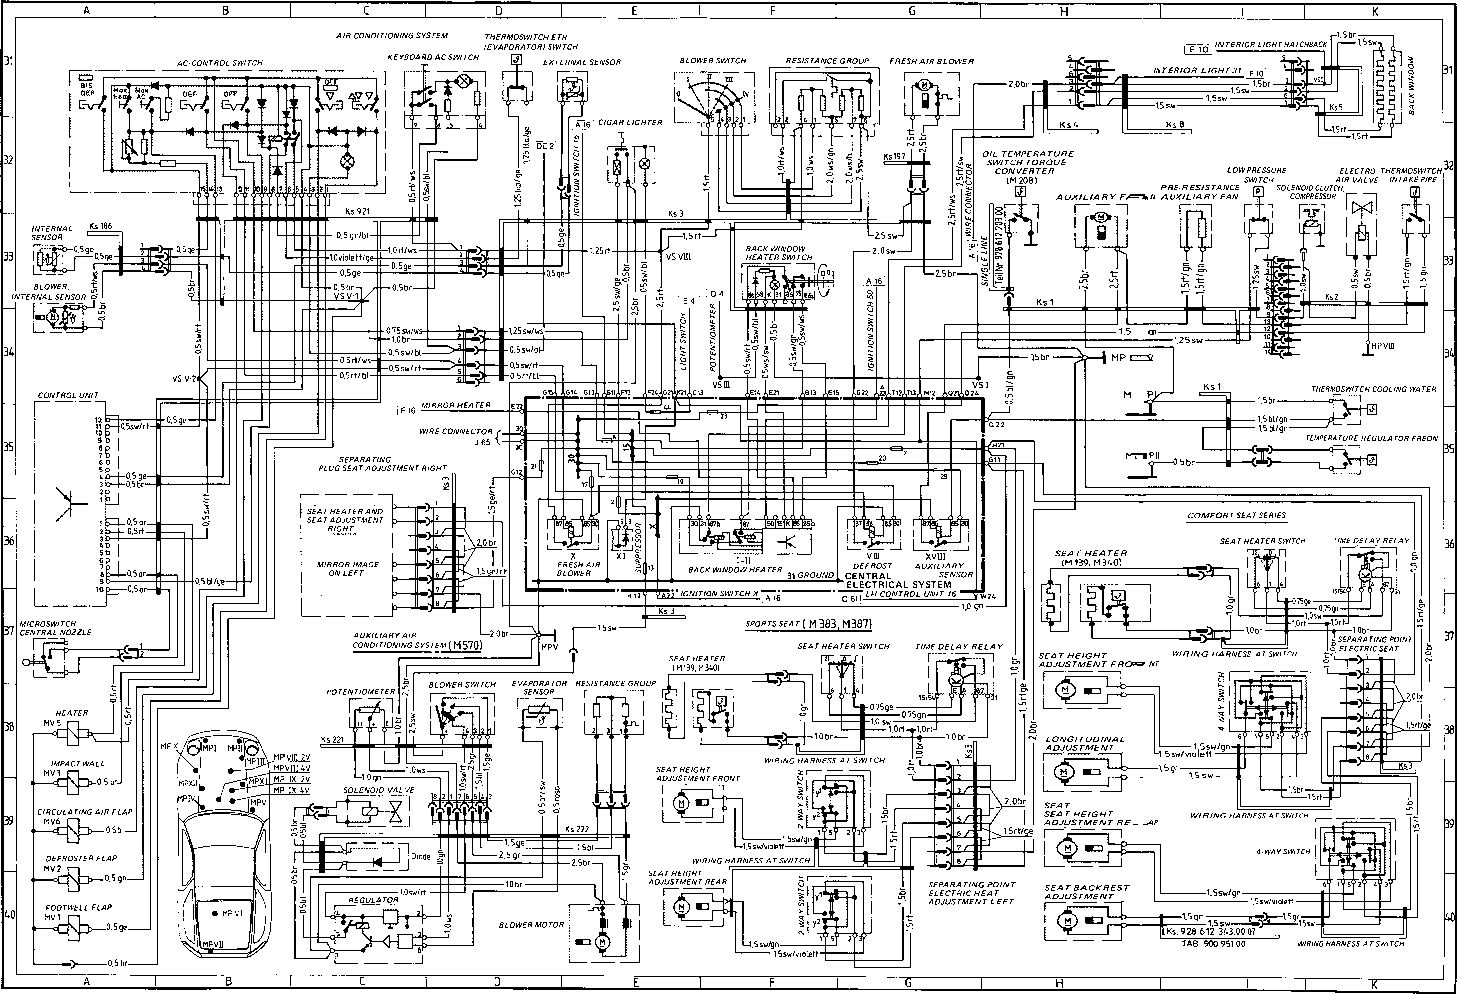 1984 Porsche 928 Wiring Diagram Free For You Dean Electric Guitar Diagrams Download Images Gallery